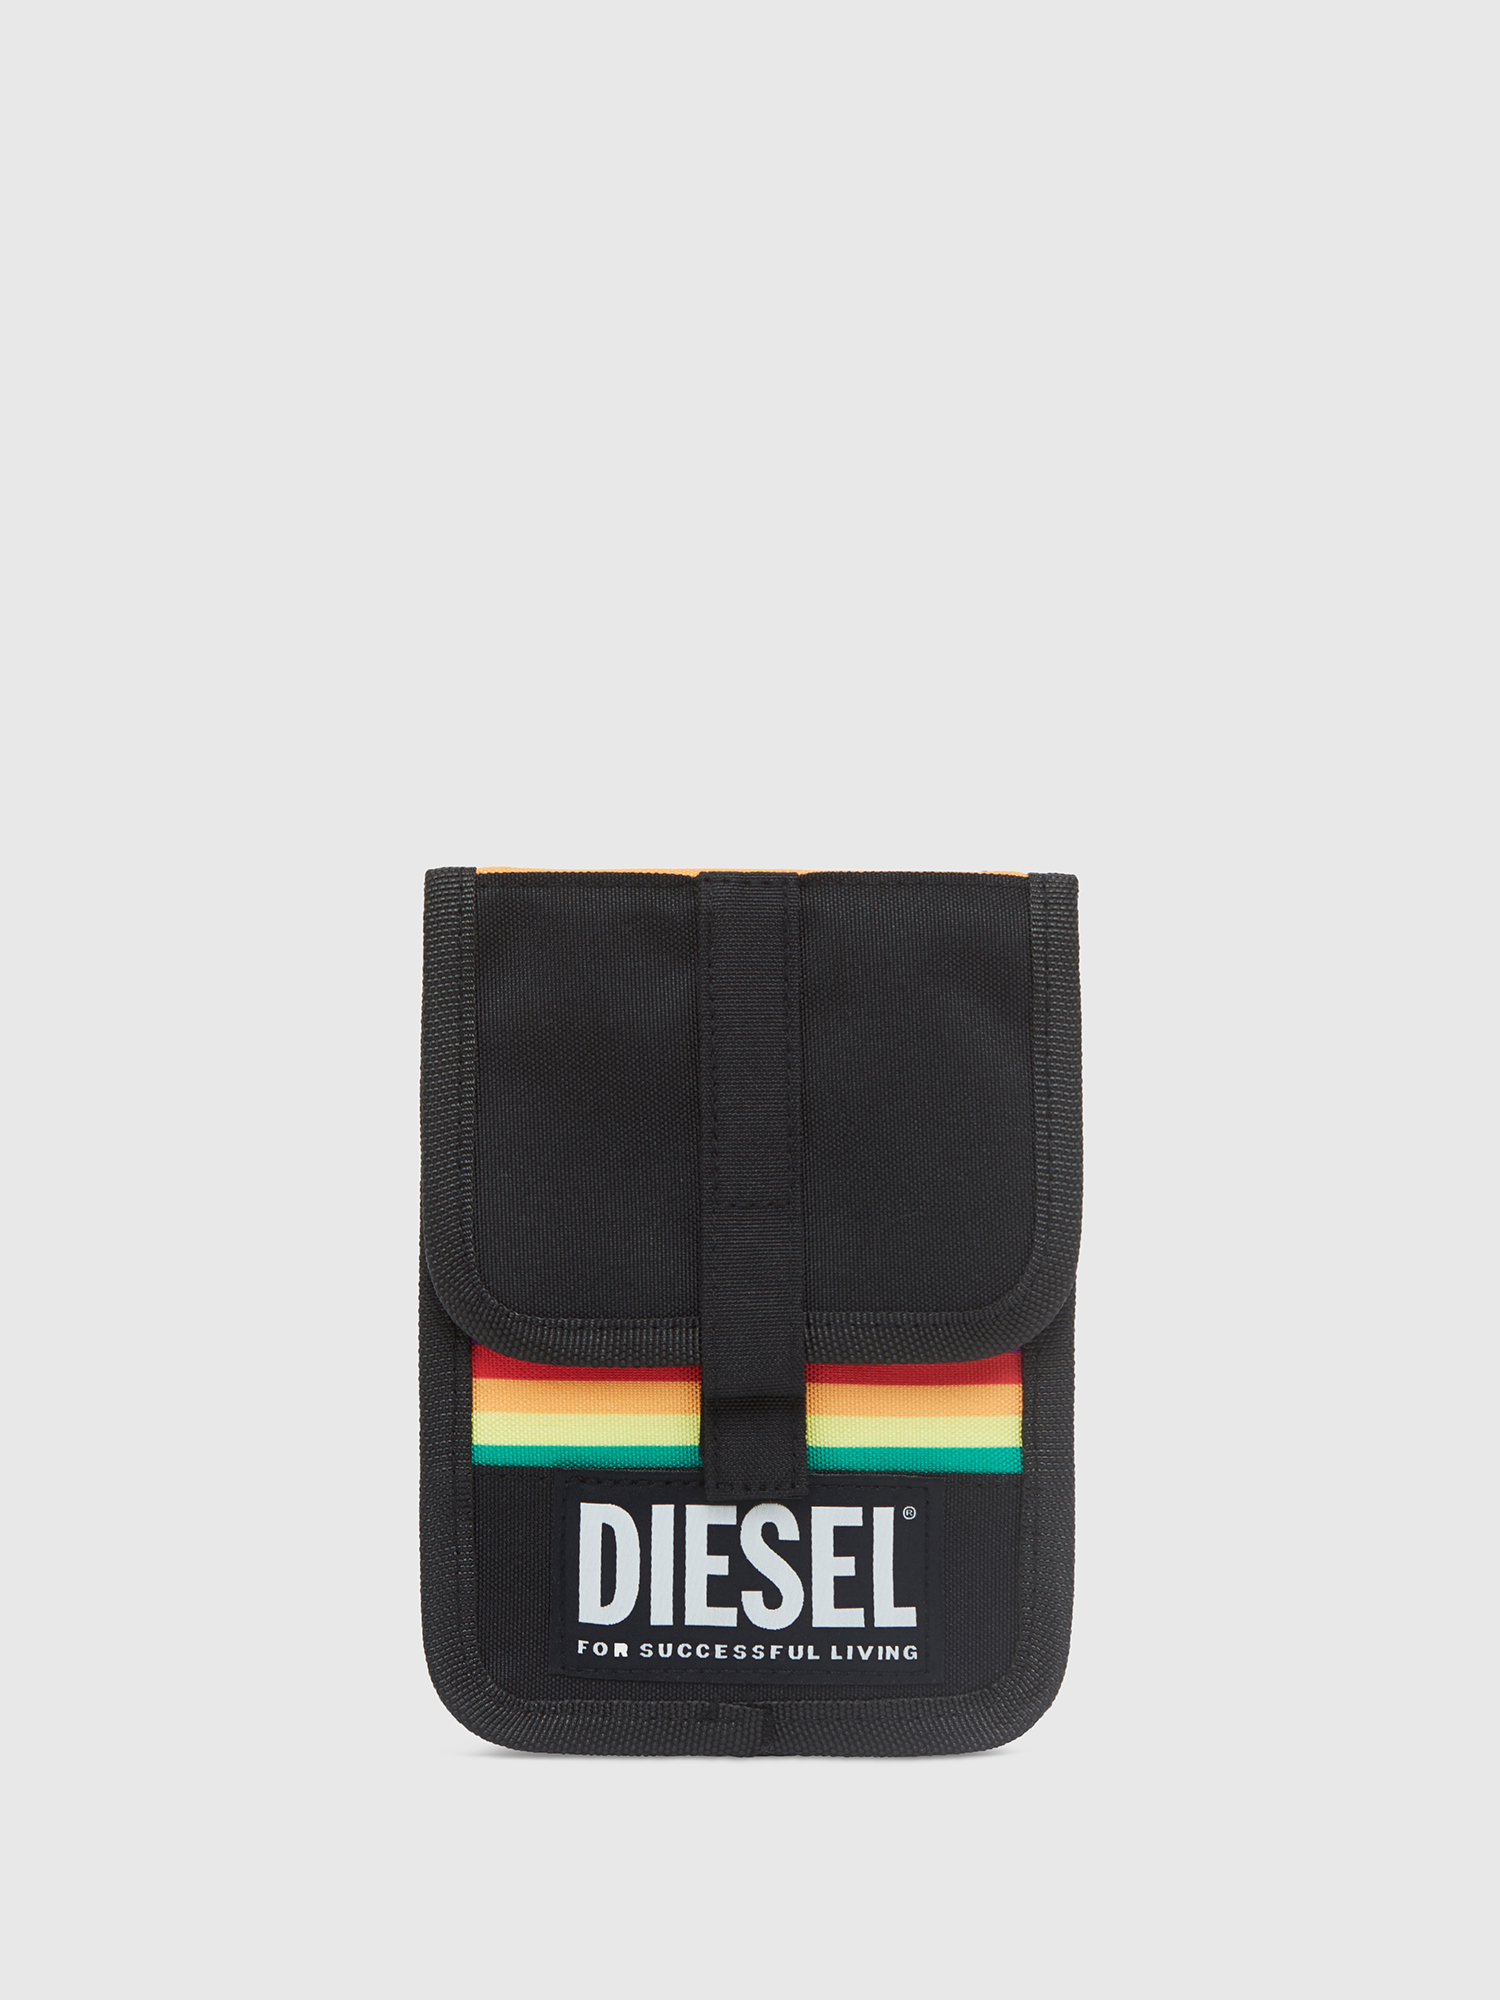 Diesel Beachwear accessories 0LAXO - Black